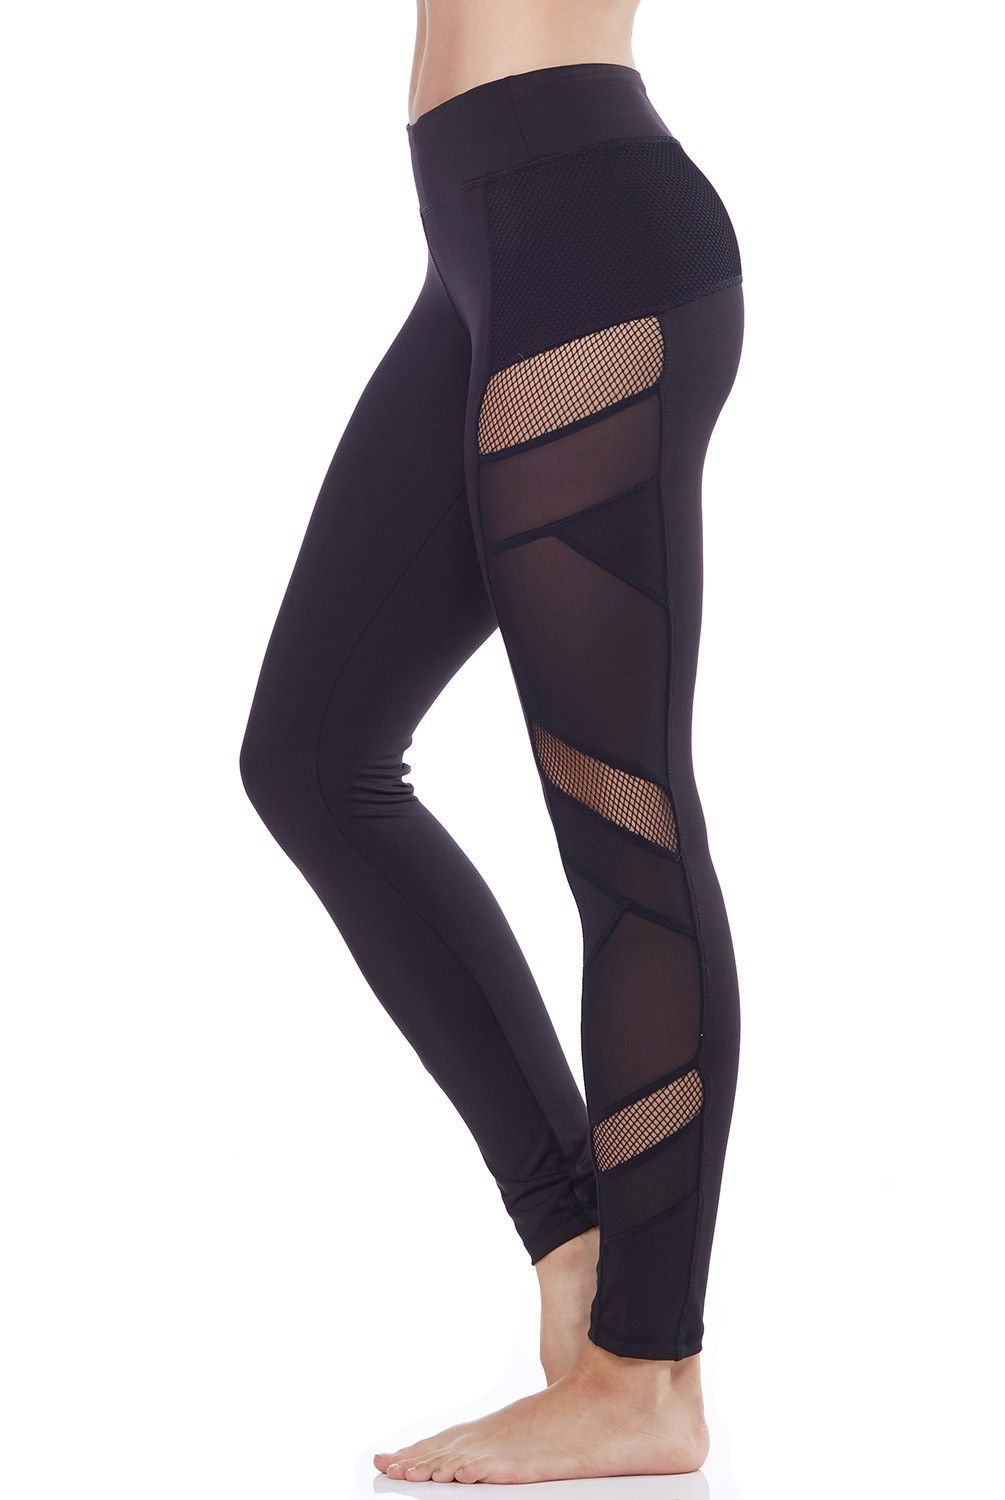 70f8914121872d Electric Yoga Sexy Mesh Panel Legging in Black | Activewear | Mesh ...